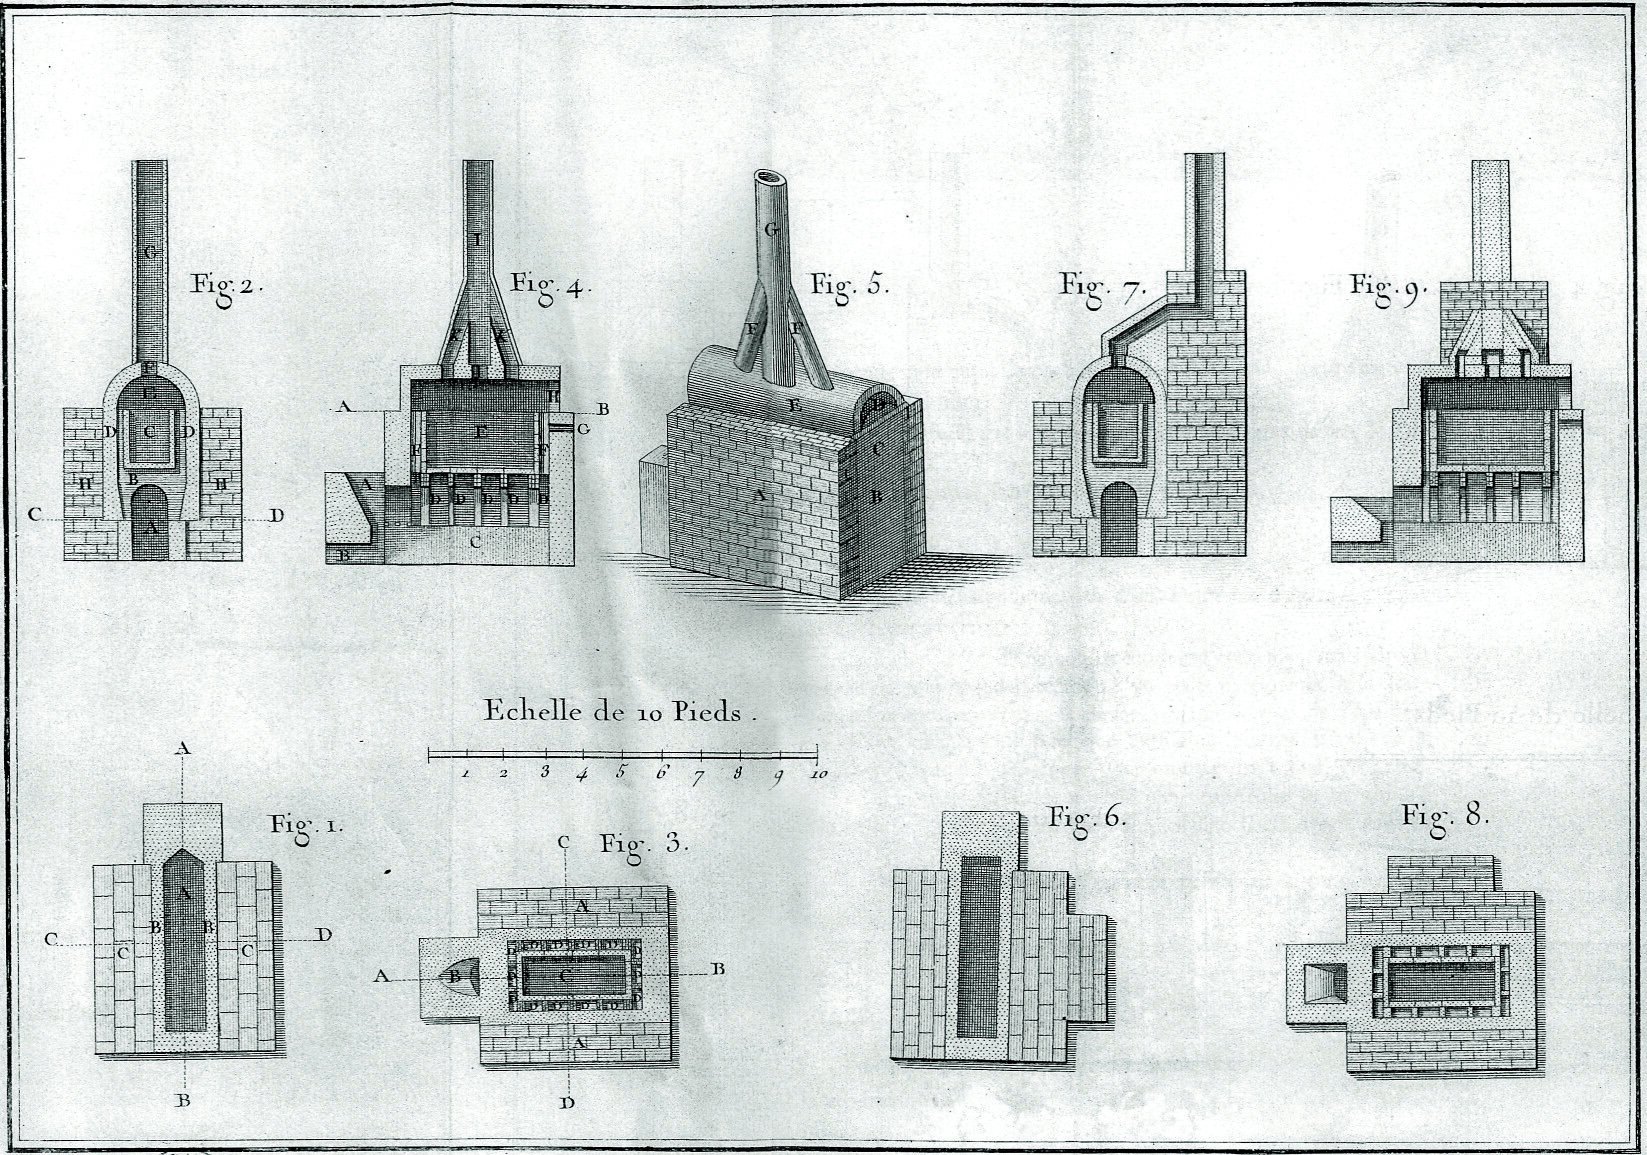 Comparable steel furnace to Petty's Run